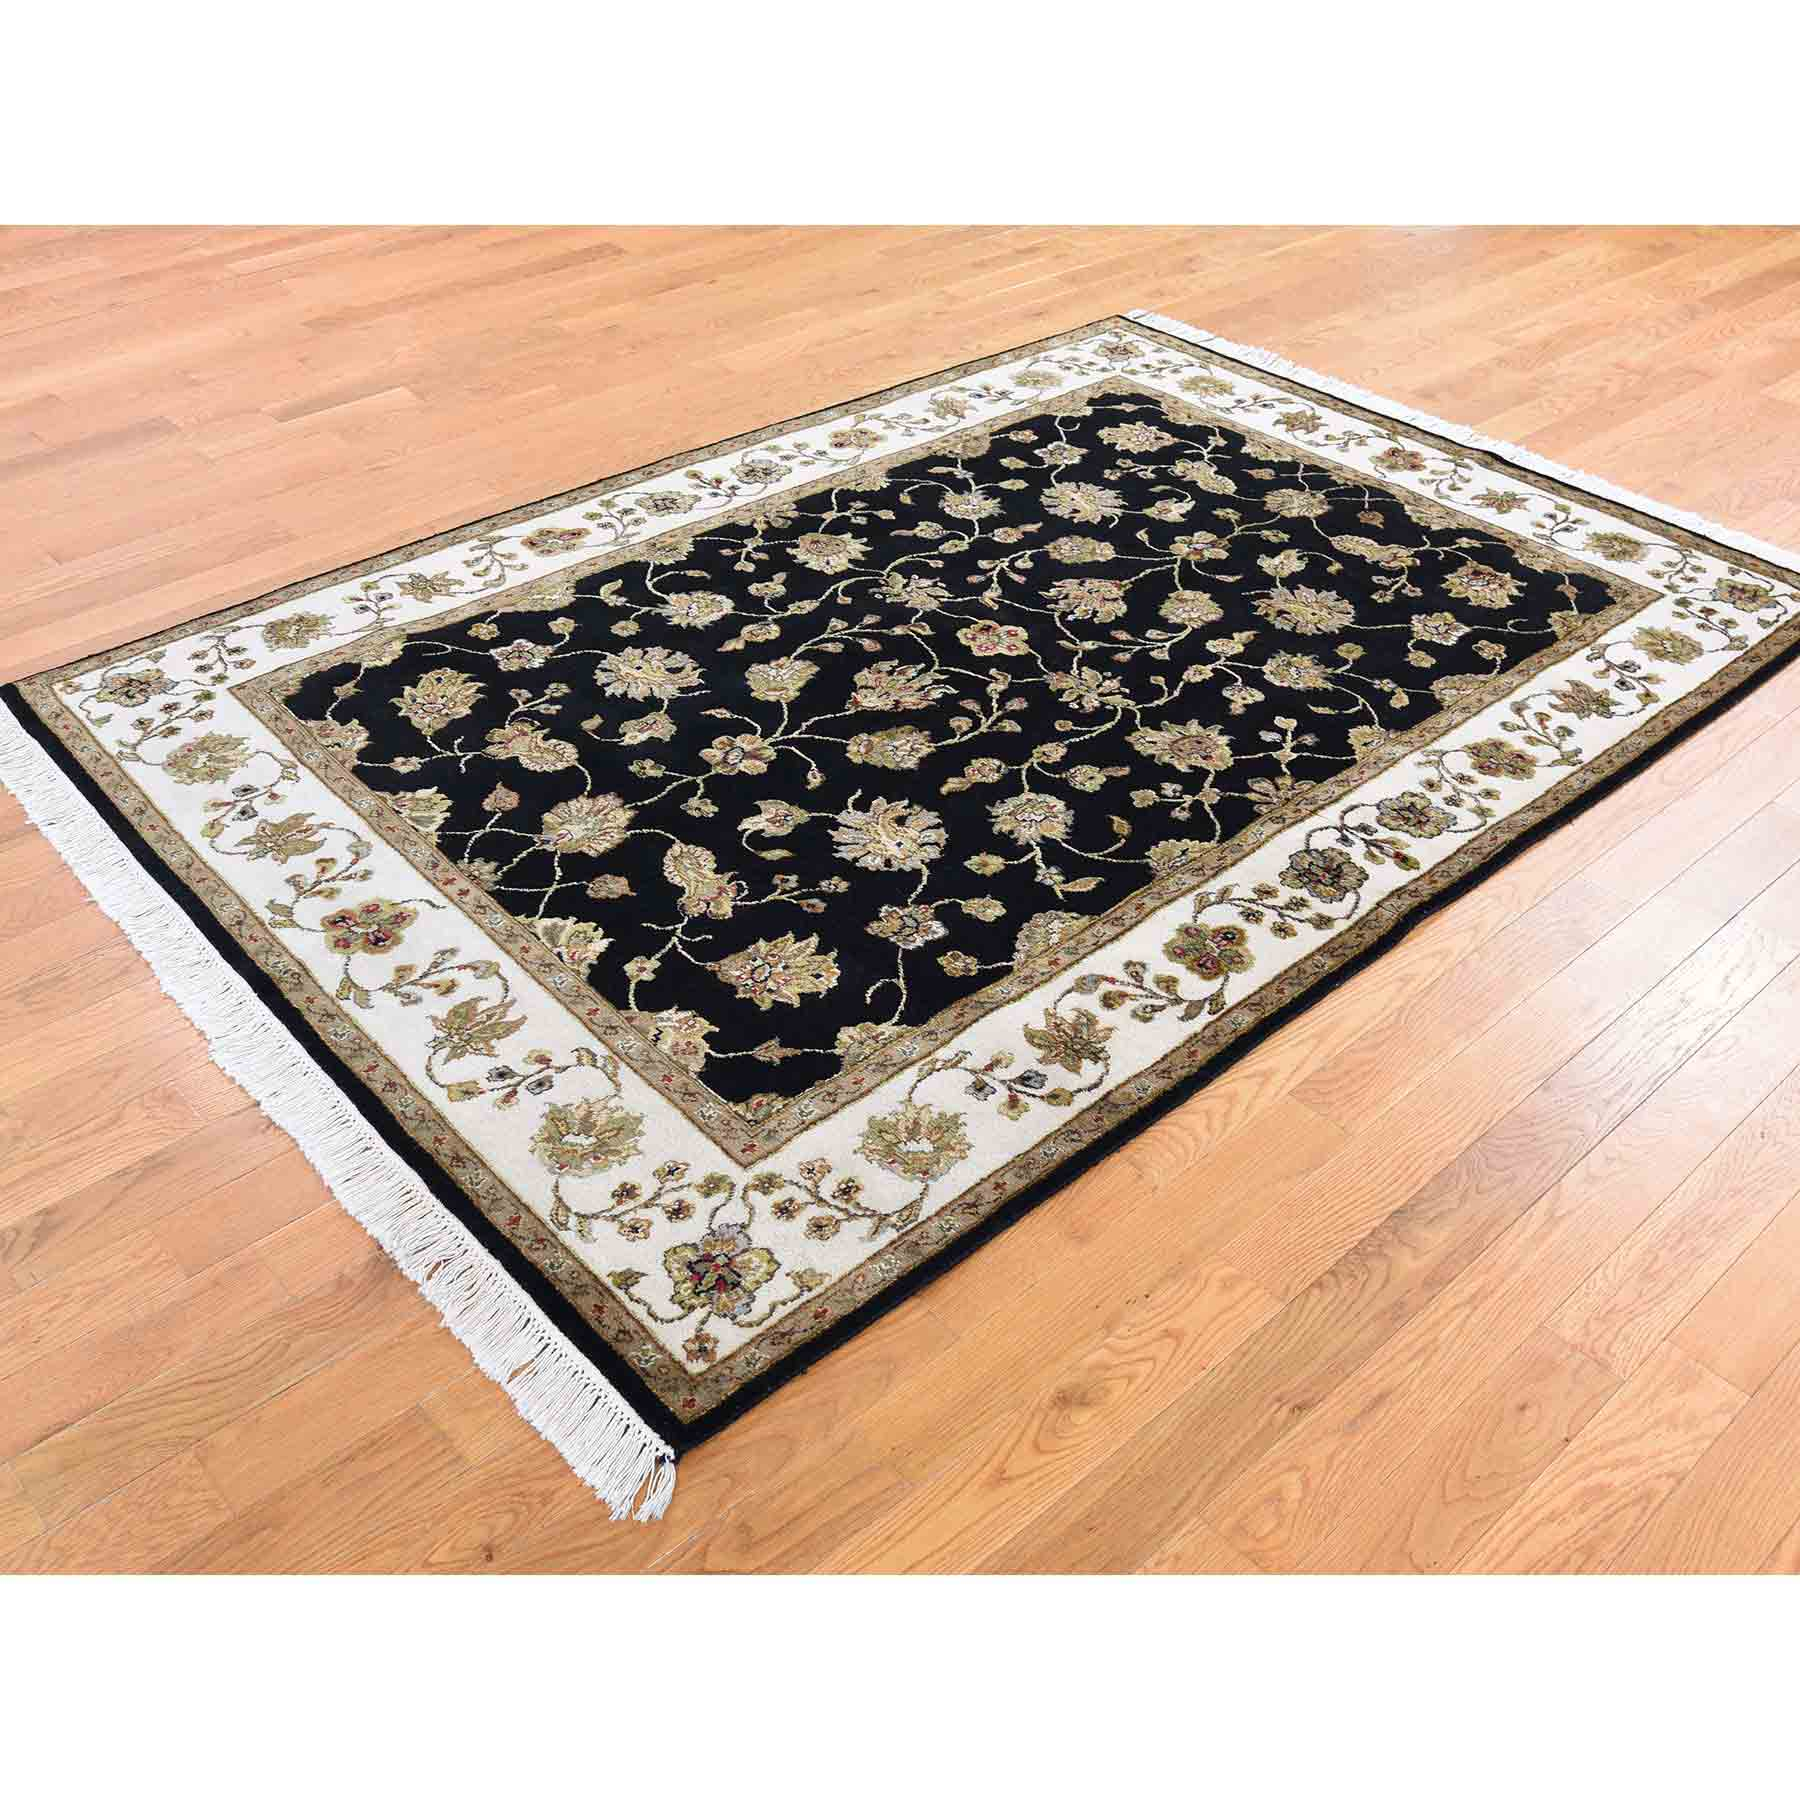 Rajasthan-Hand-Knotted-Rug-232515